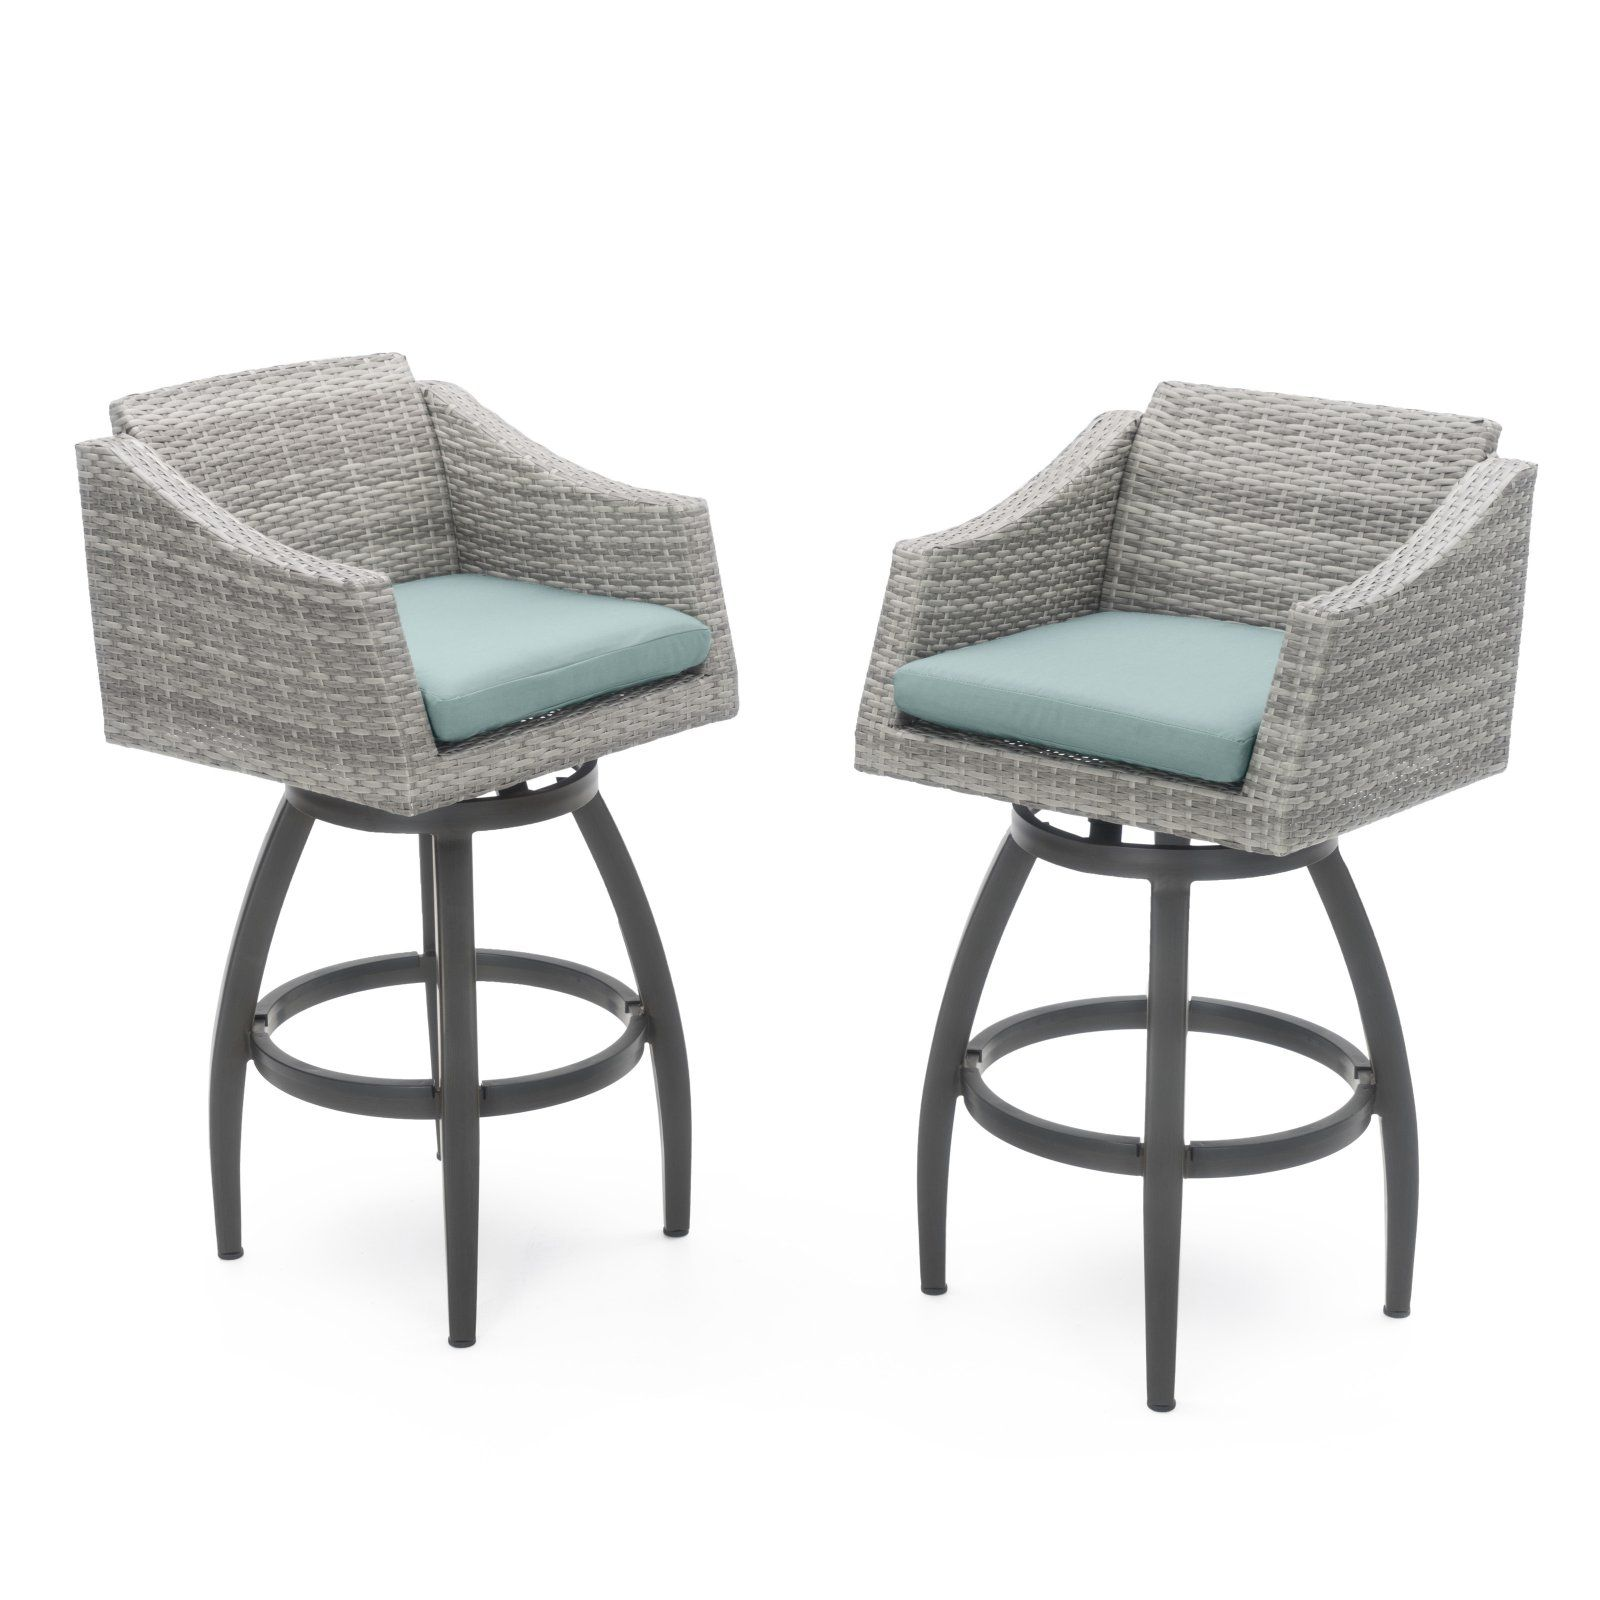 outdoor rst cannes wicker swivel patio barstools set of 2 rh pinterest com